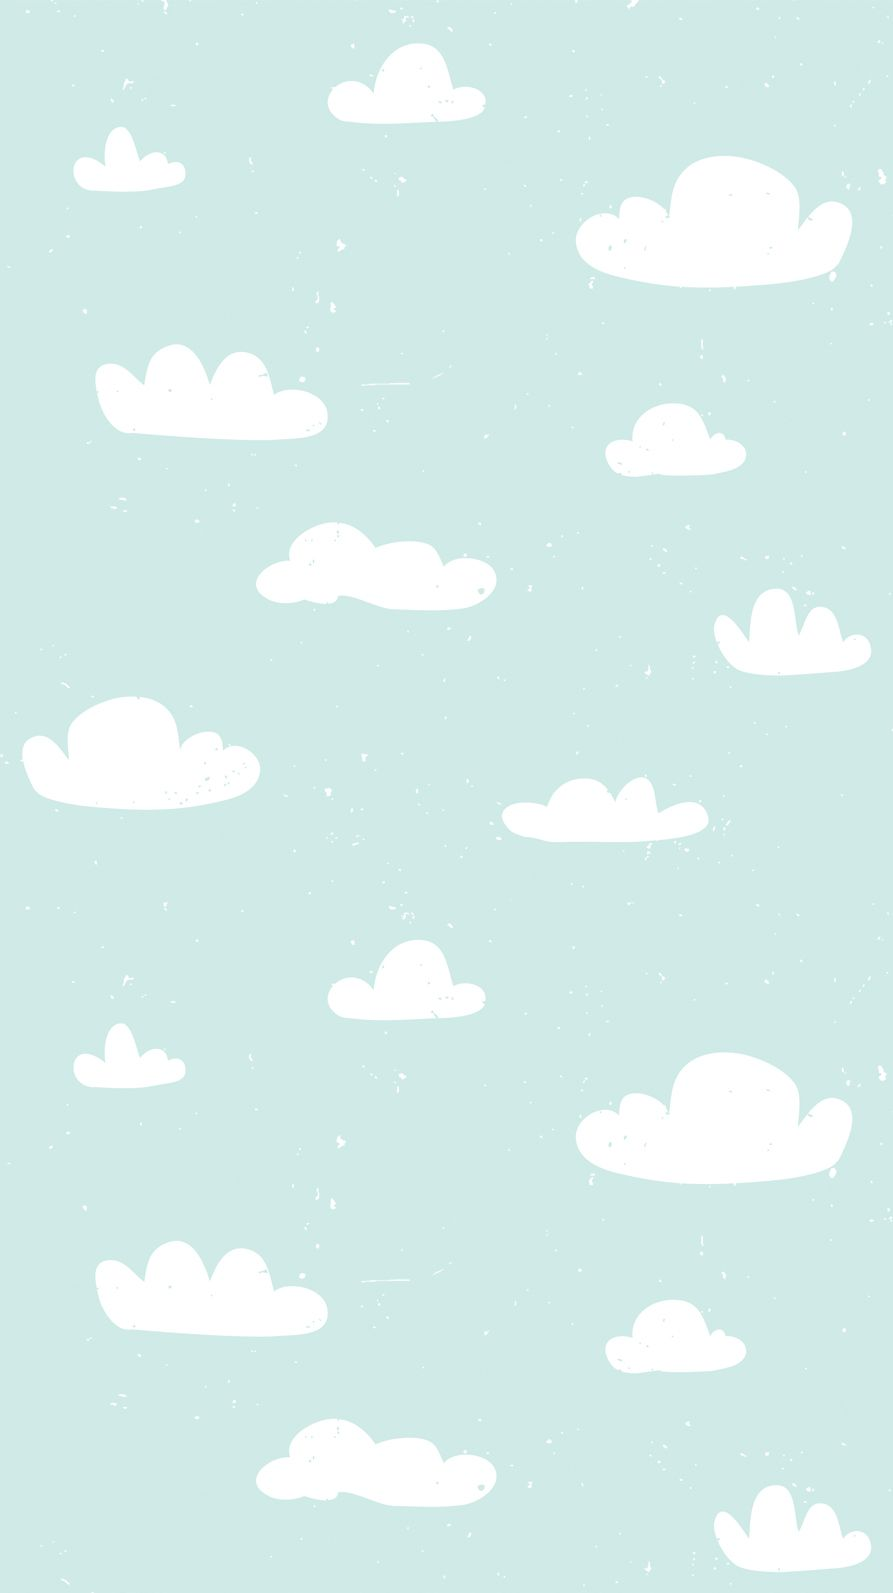 Love Blue Sky Iphone Wallpaper Home Screen Panpins Iphone